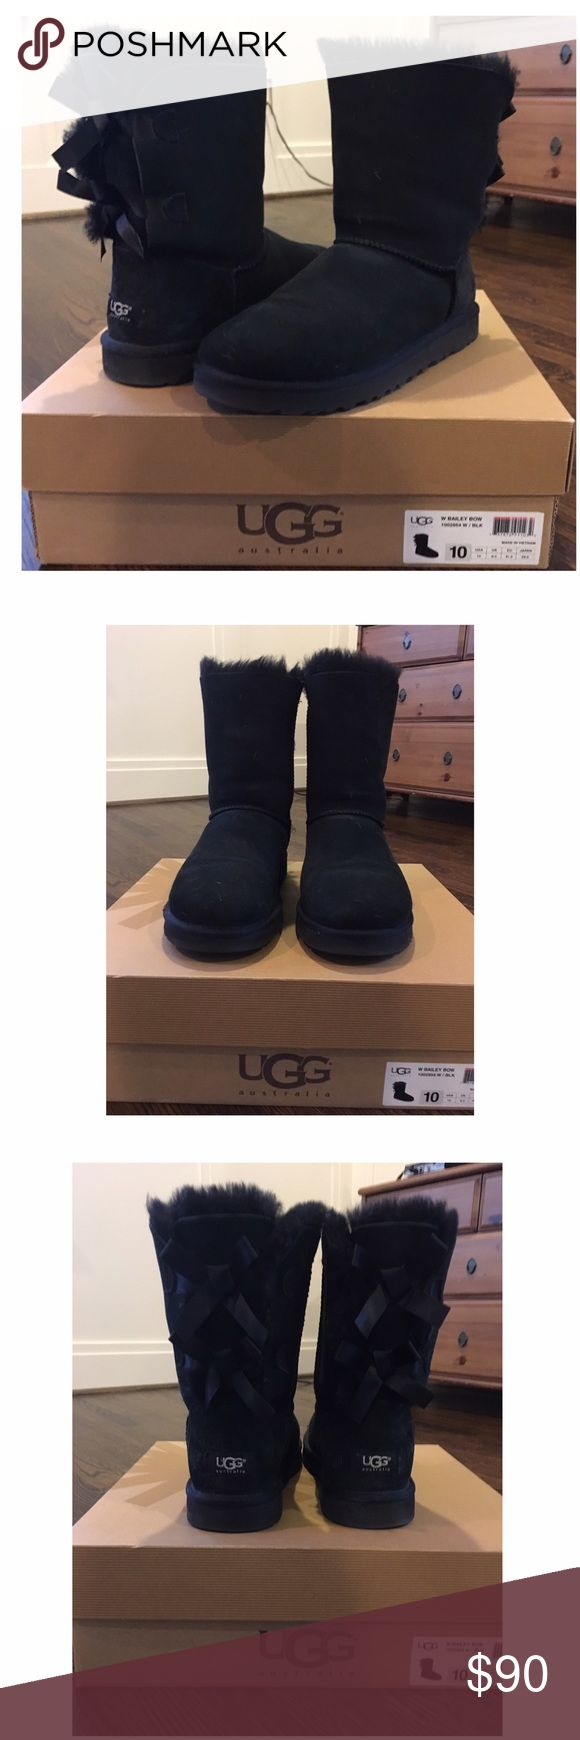 UGG Bailey Bow Boot Black UGG Bailey Bow boot.  Short black boot with three bows in back. EUC. UGG Shoes Winter & Rain Boots